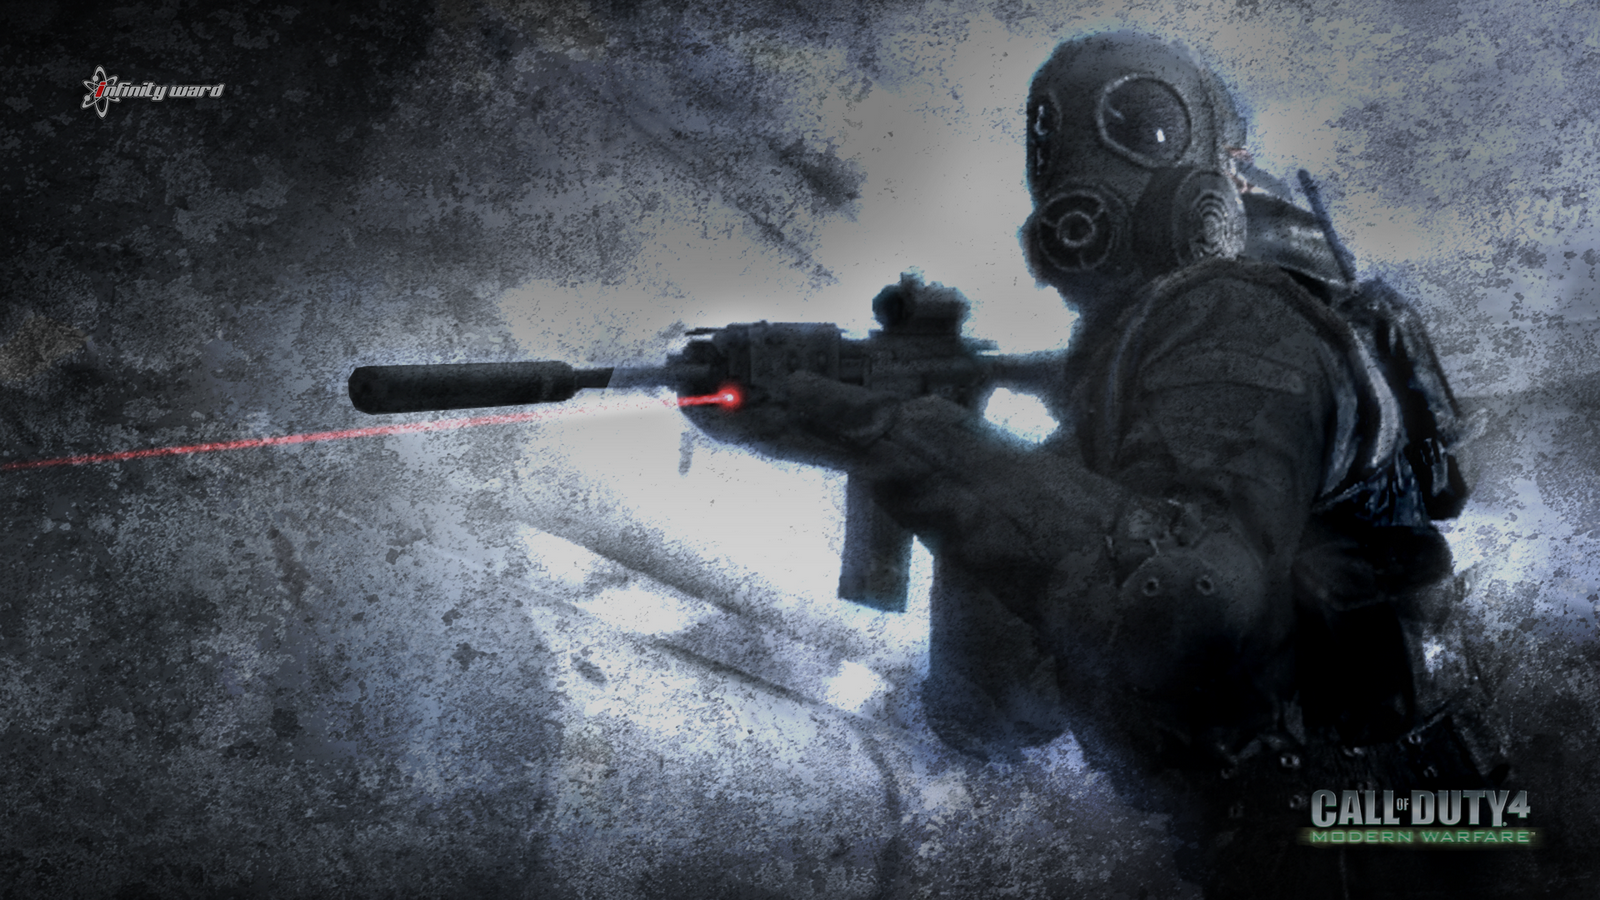 http://1.bp.blogspot.com/-7bZWOixNWvM/Tj0J_-FF_jI/AAAAAAAACgc/FPZRVfti22g/s1600/Call_of_Duty_Modern_Warfare_CoD4_HD_Wallpaper_2.png